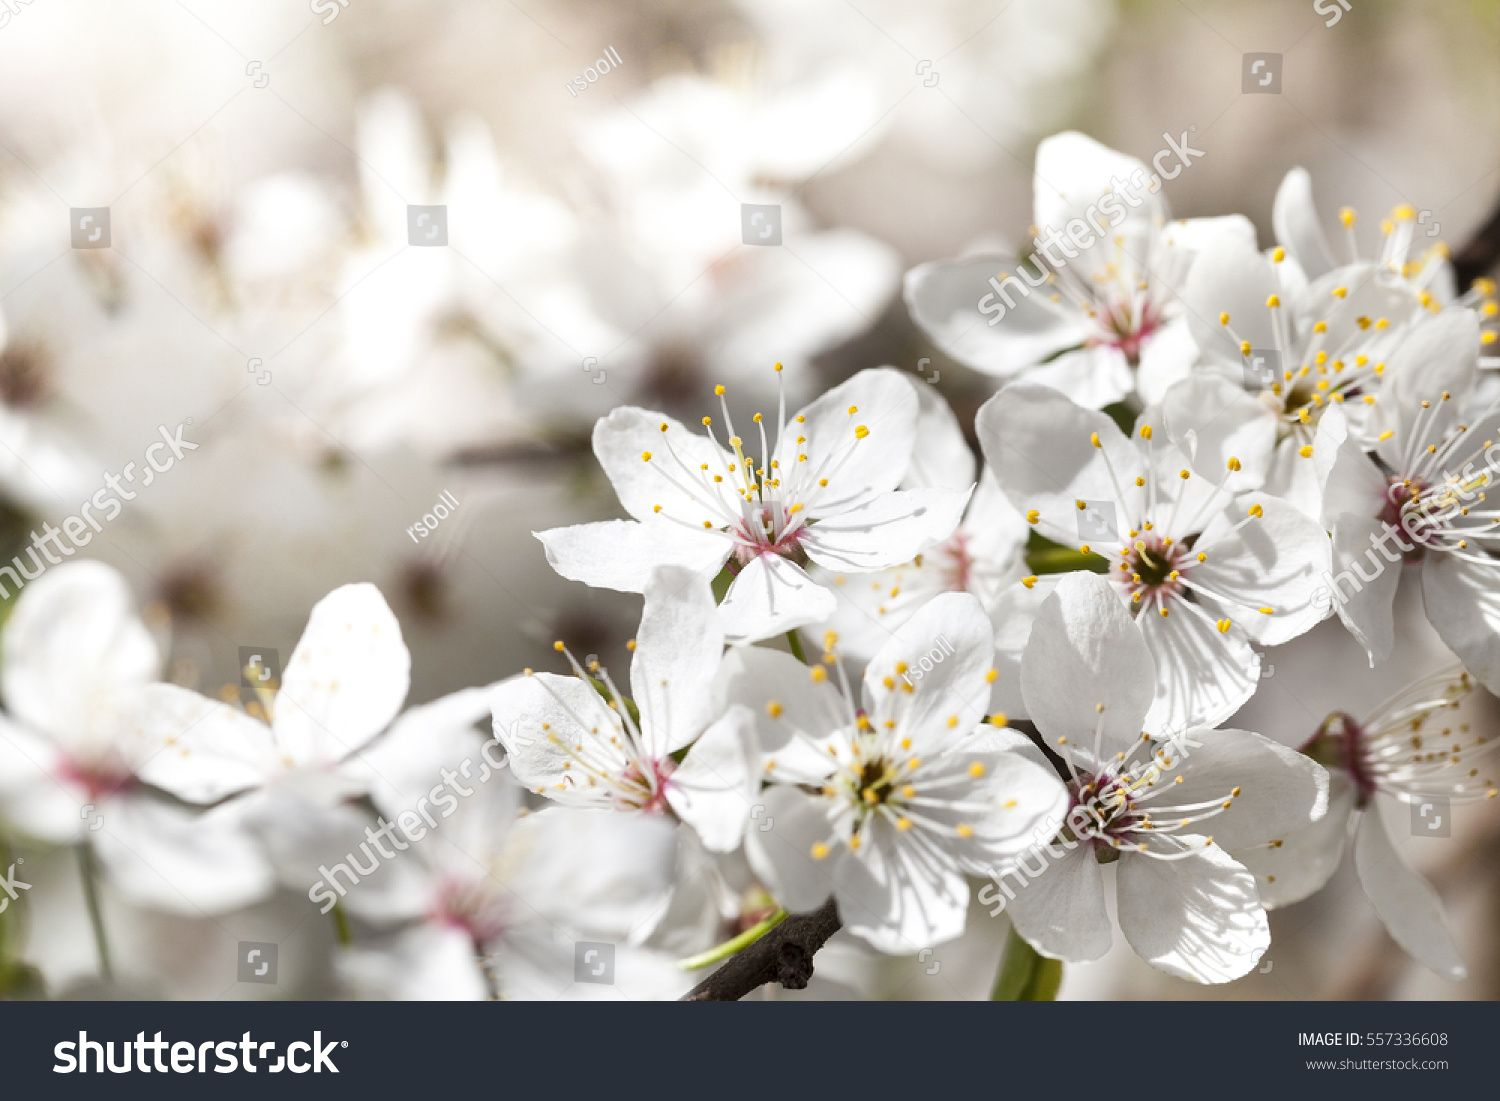 White Cherry Flowers In Spring During The Flowering Plants Photo